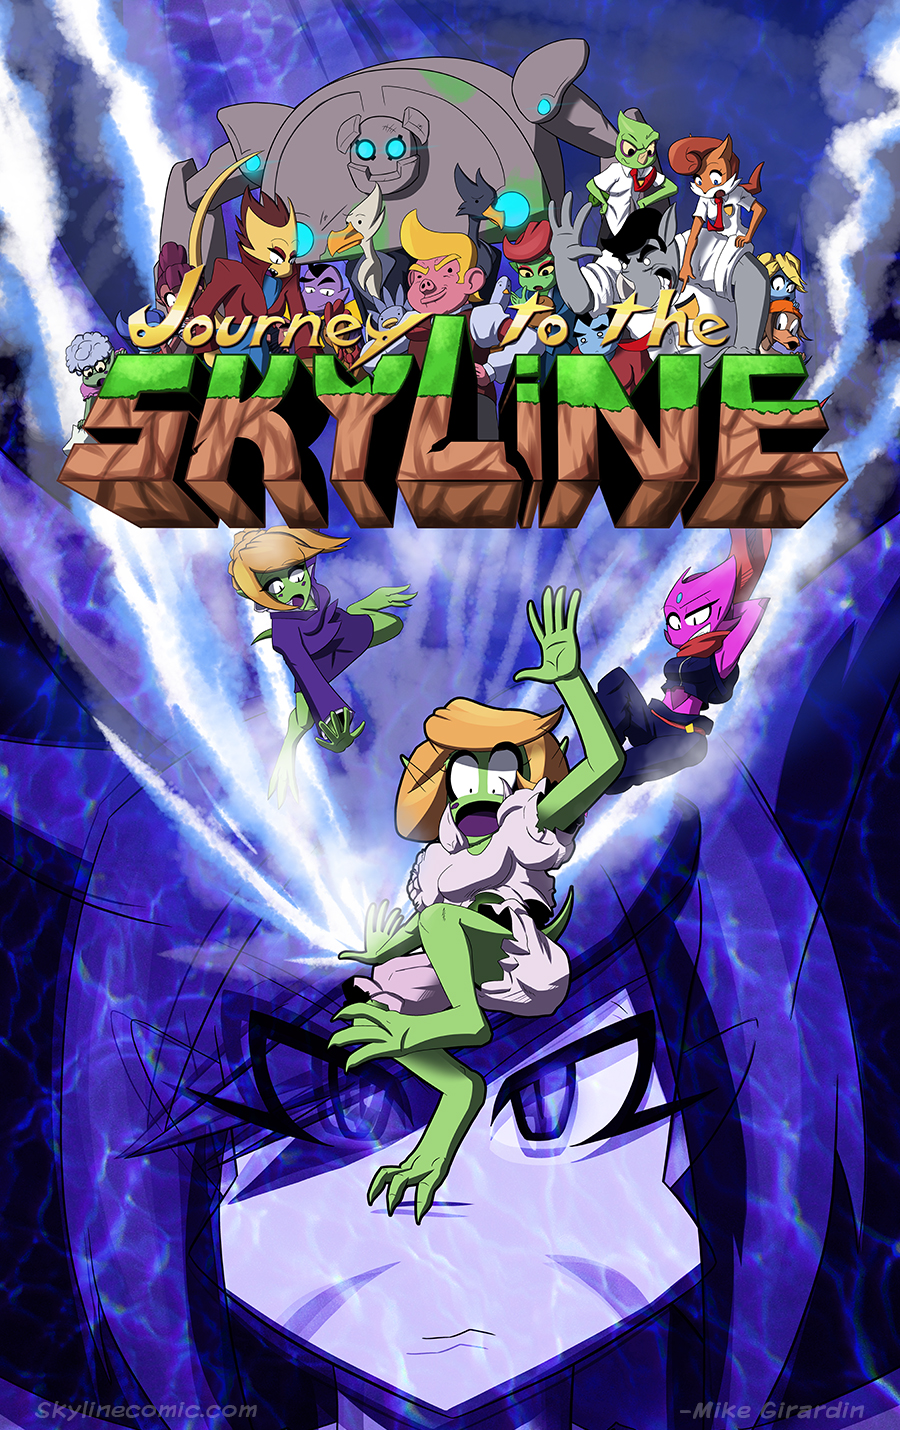 Journey to the Skyline issue 04 cover